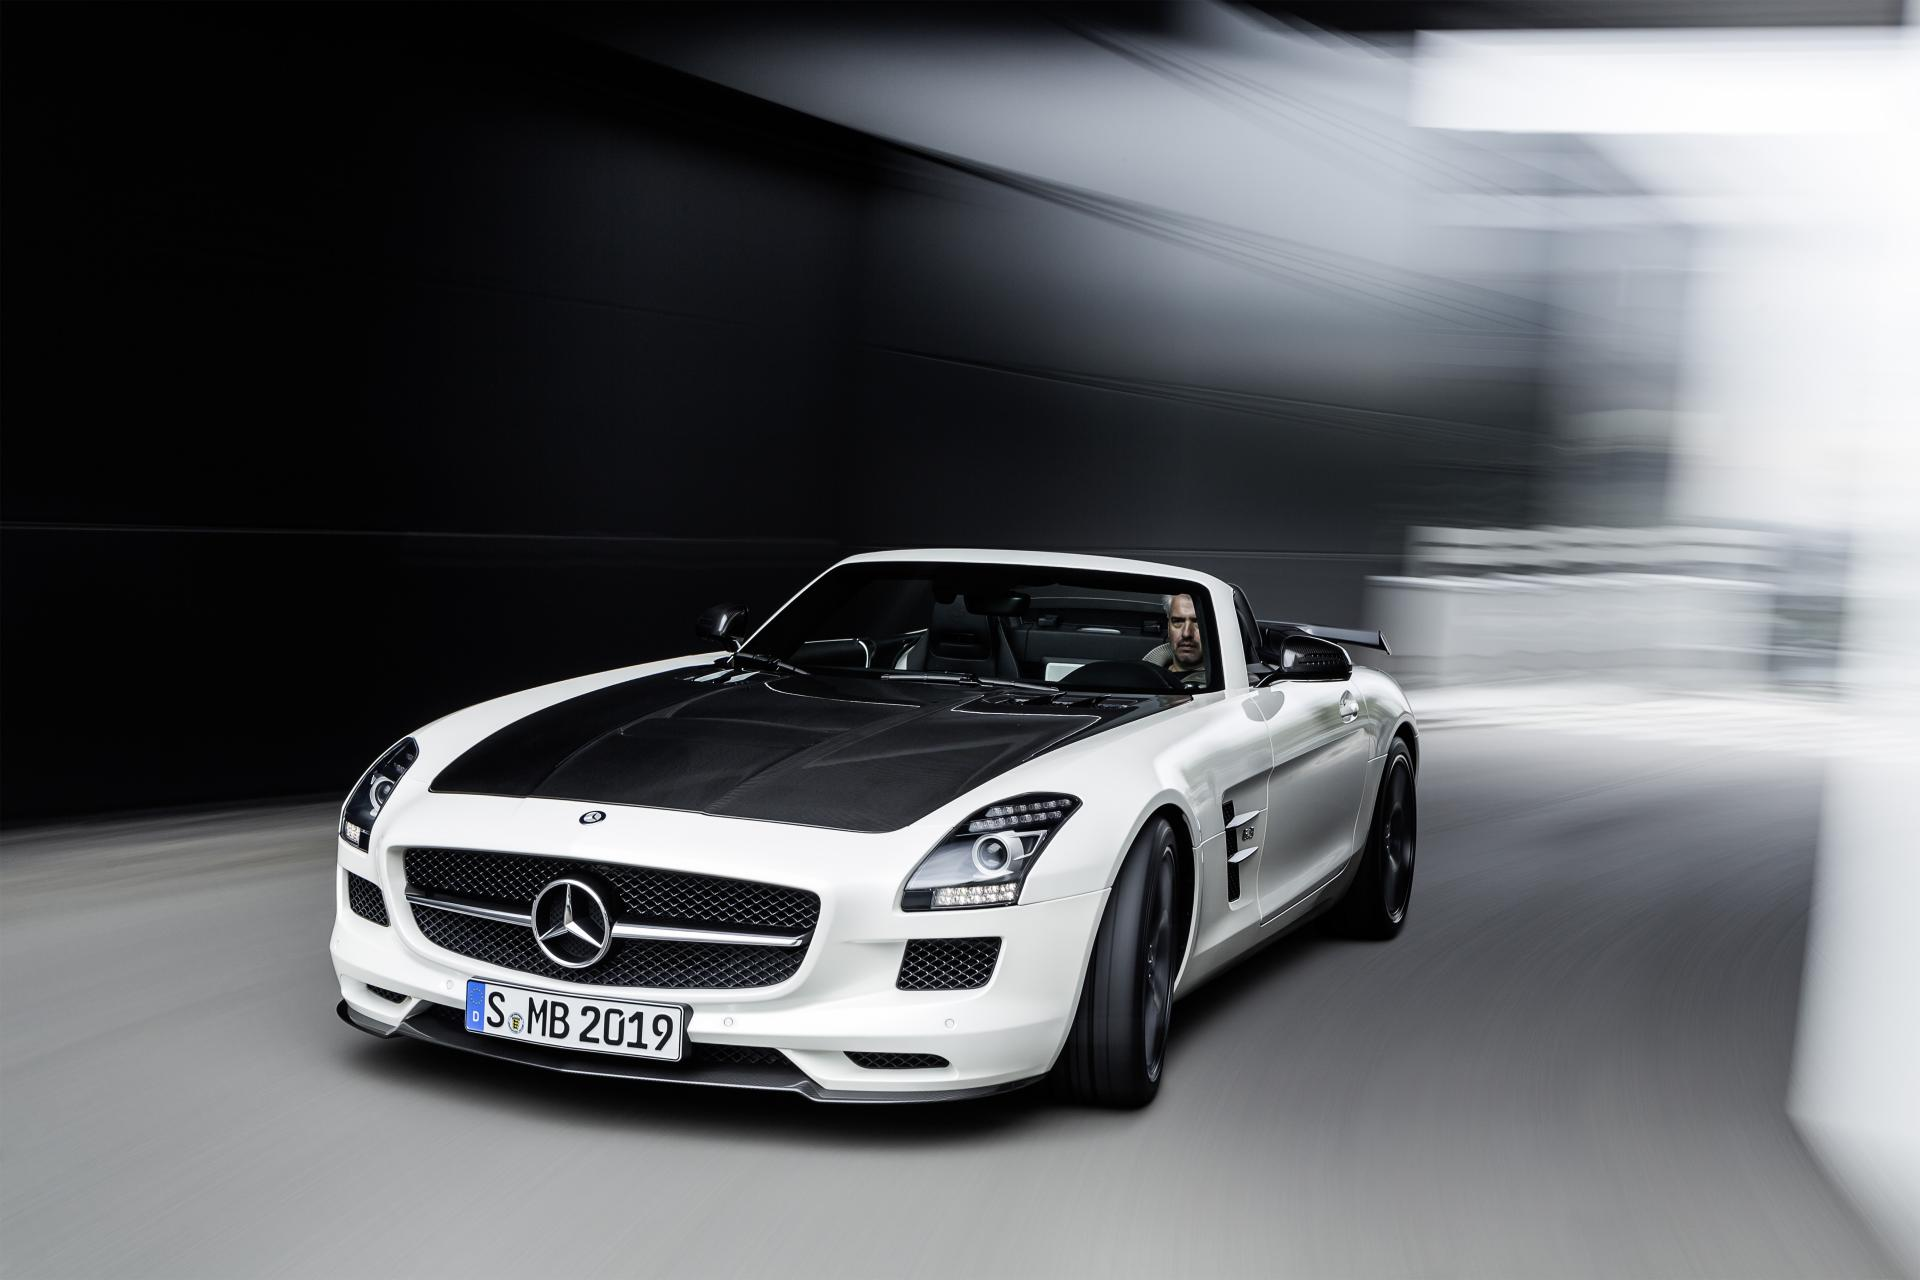 2014 mercedes benz sls amg gt final edition technical specifications and data engine. Black Bedroom Furniture Sets. Home Design Ideas